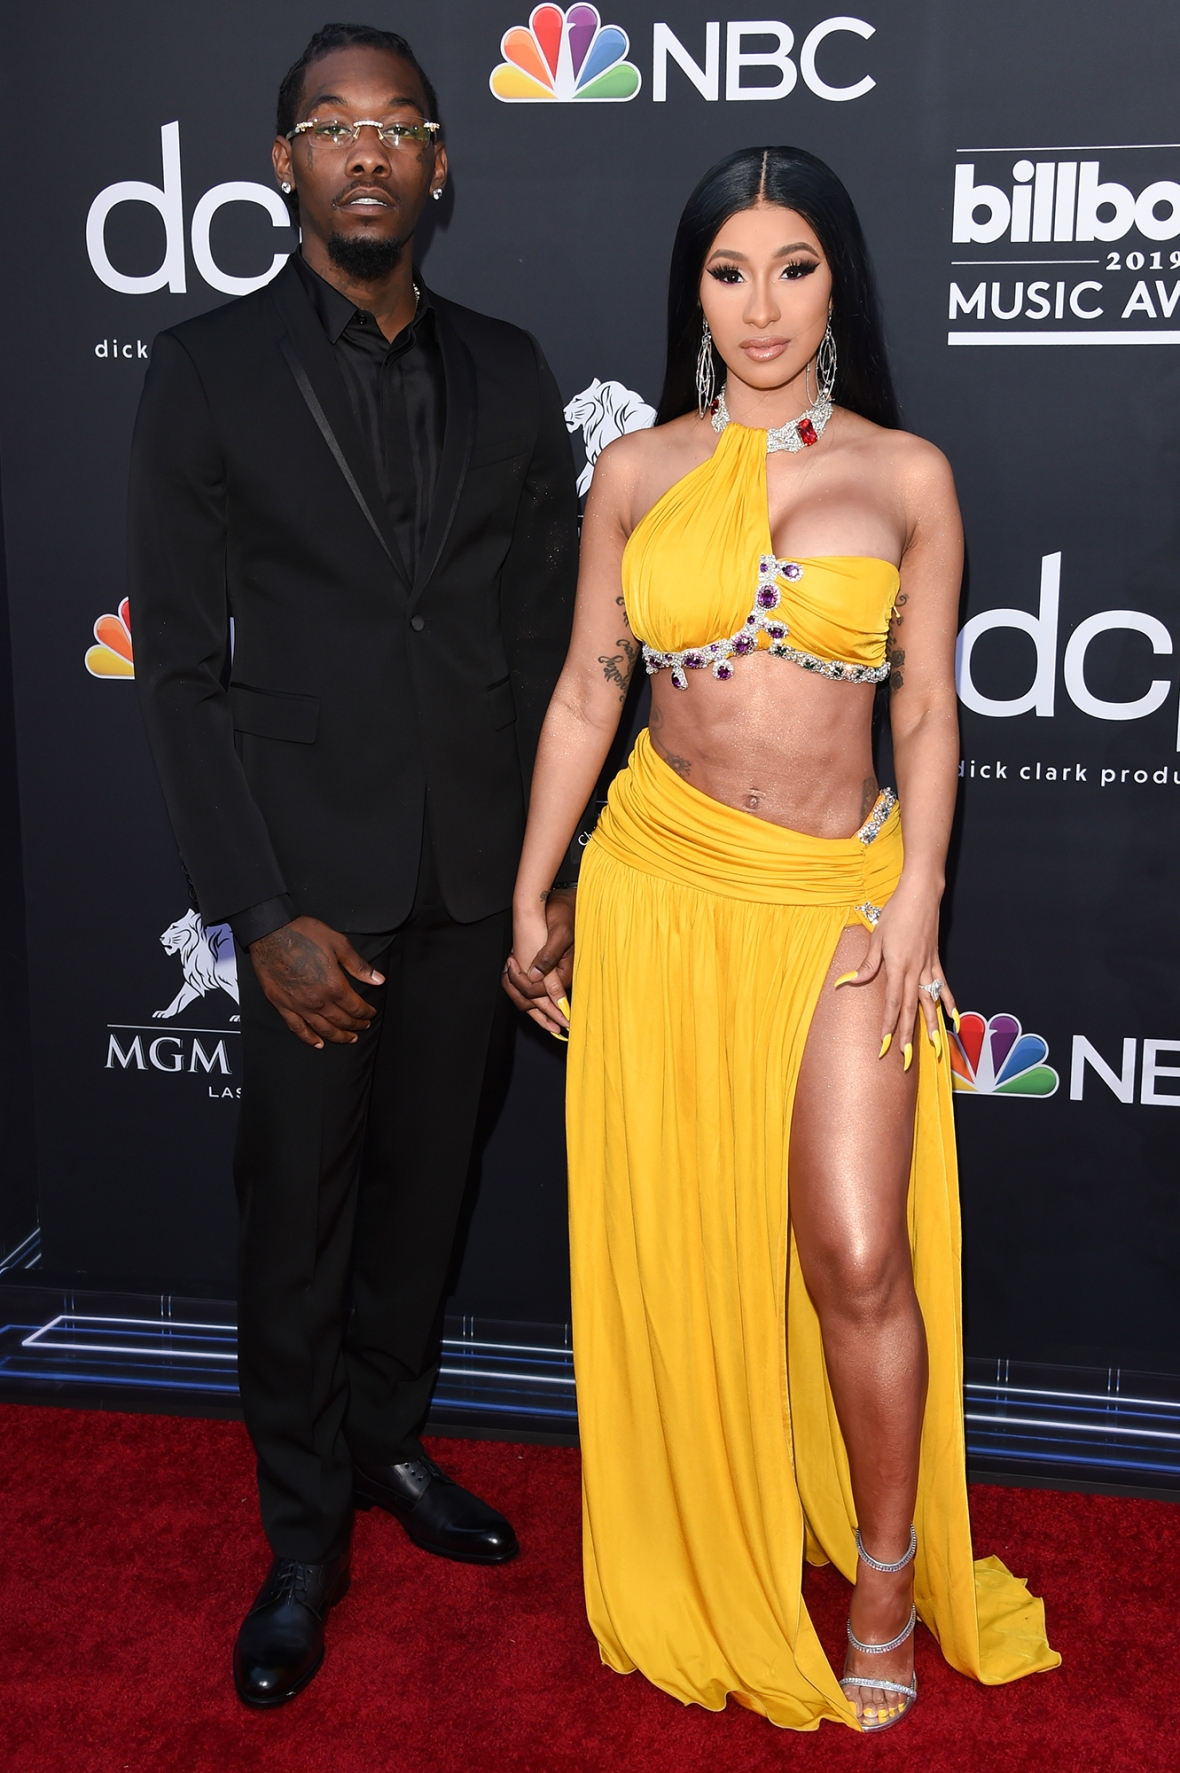 Cardi B Opens Up About Staying With Offset After Cheating Scandal